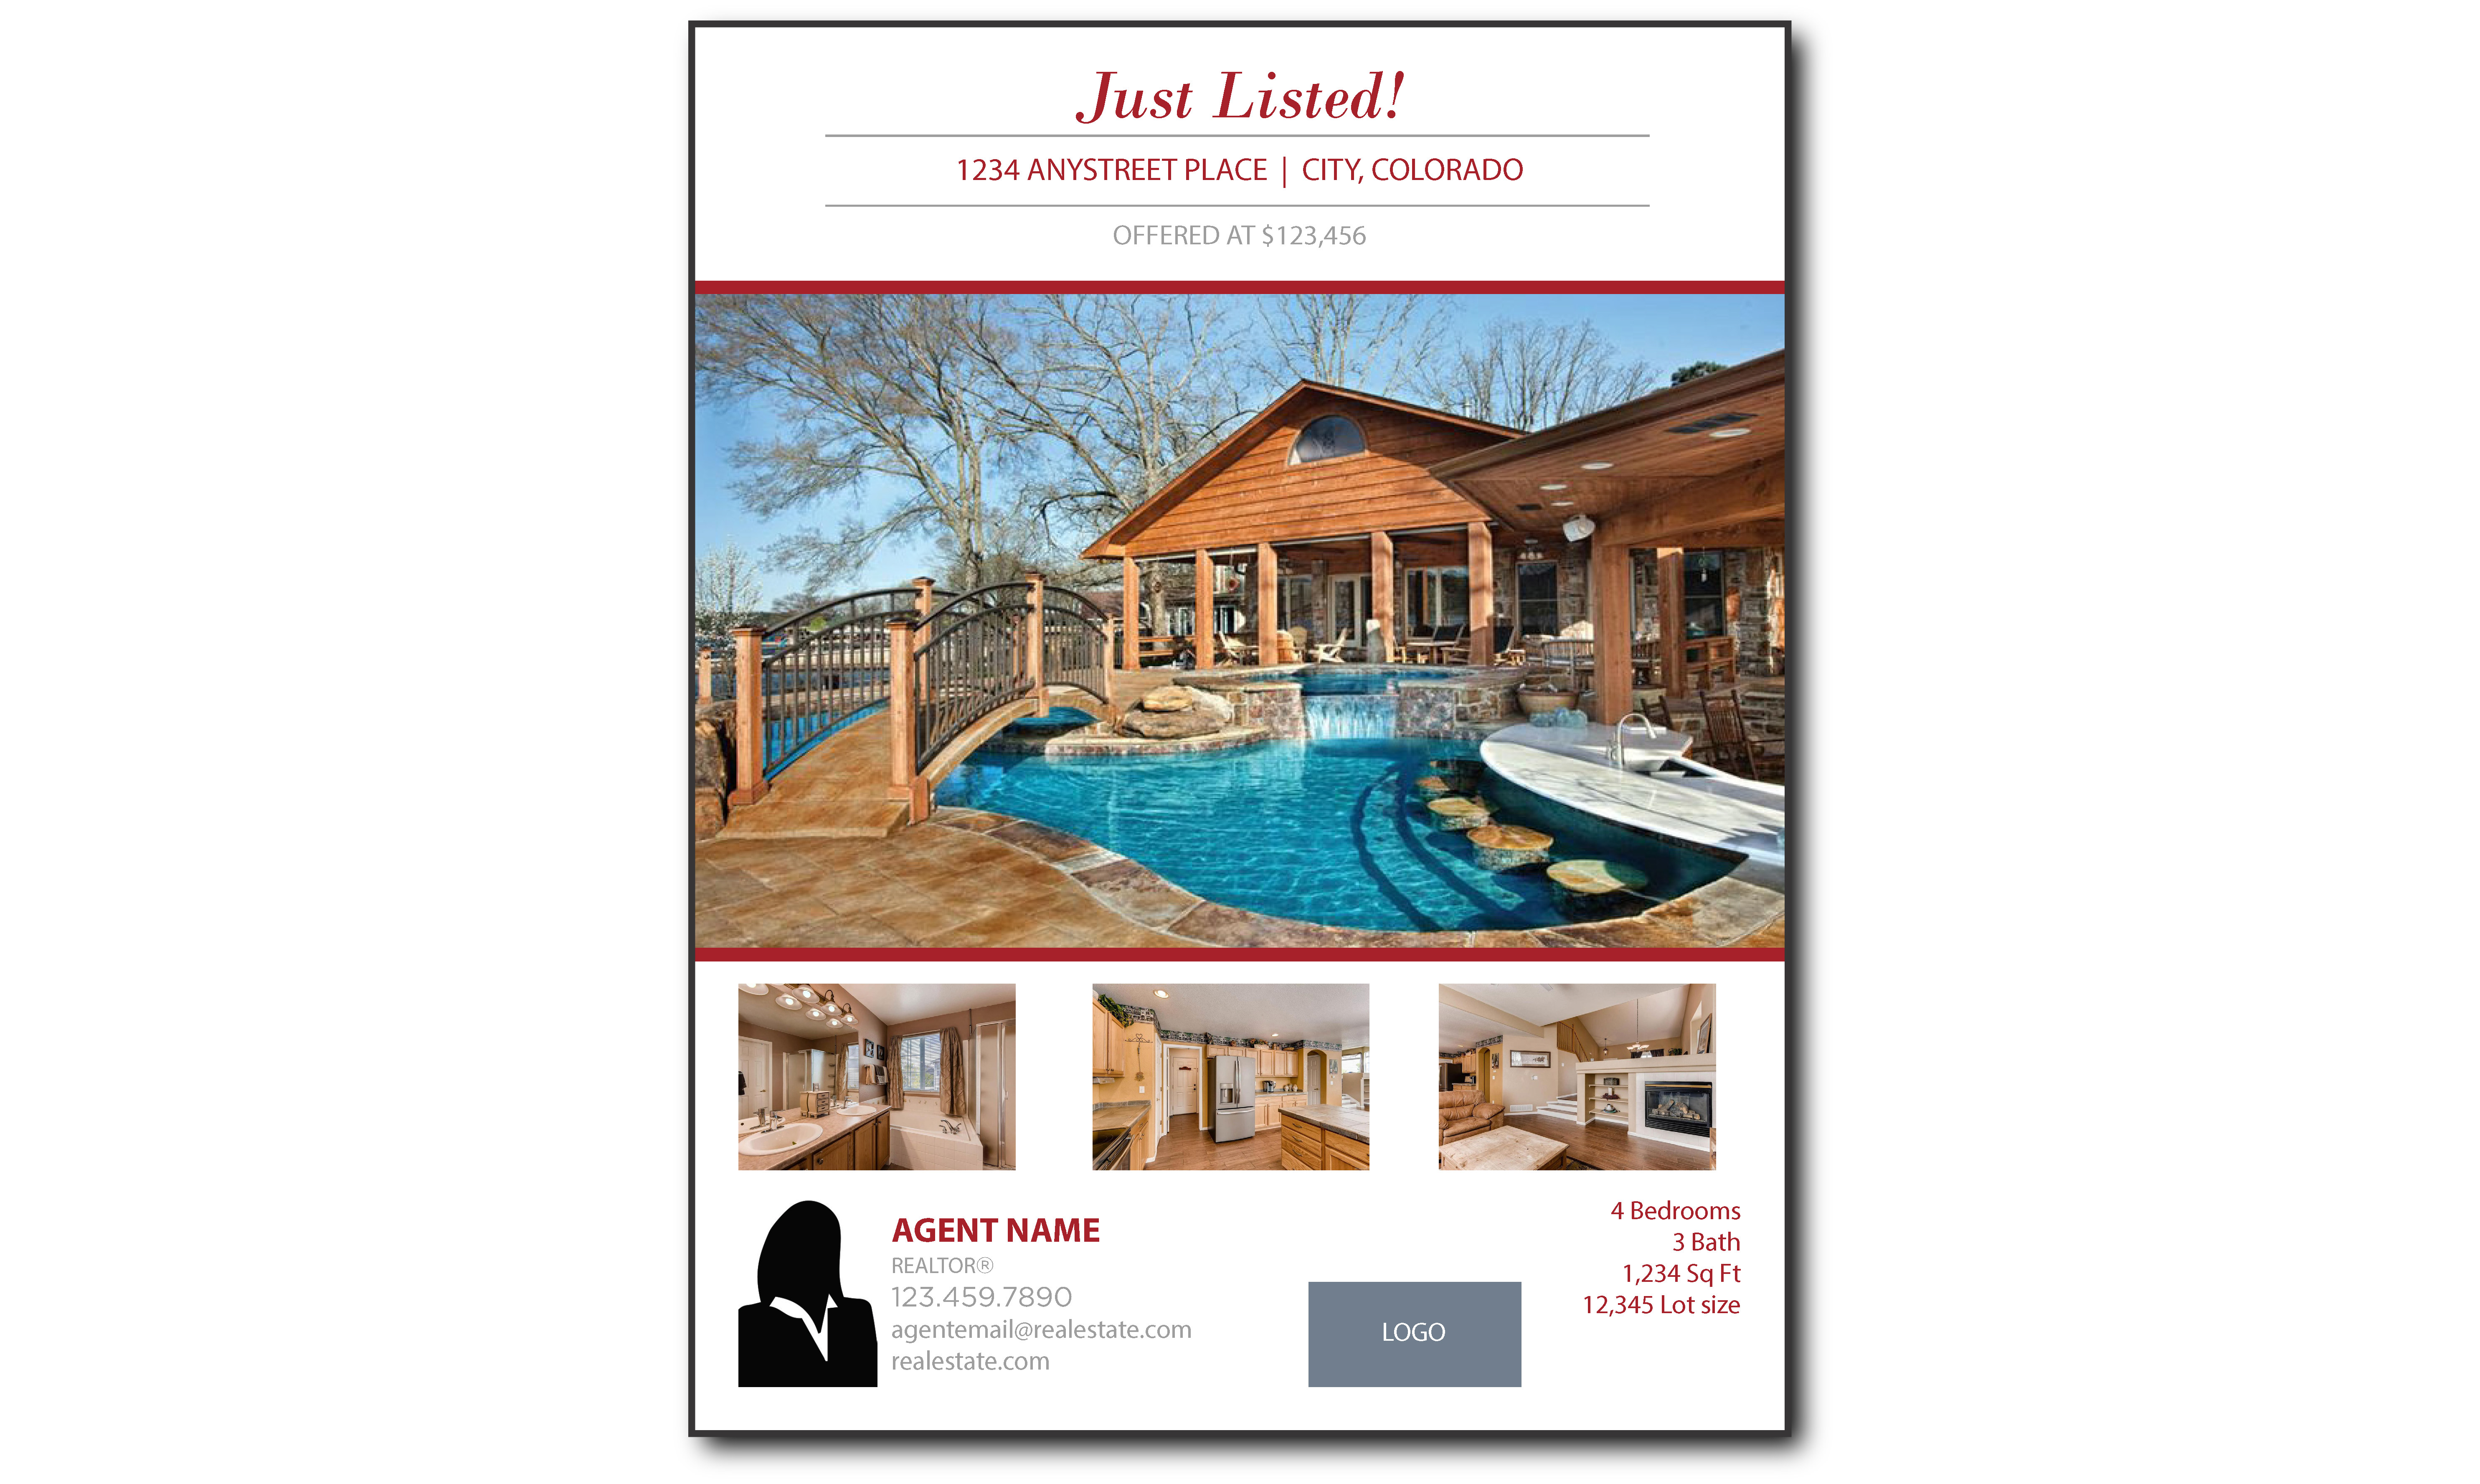 Plumb Marketing Flyer One Sided Luxury Red - 1709